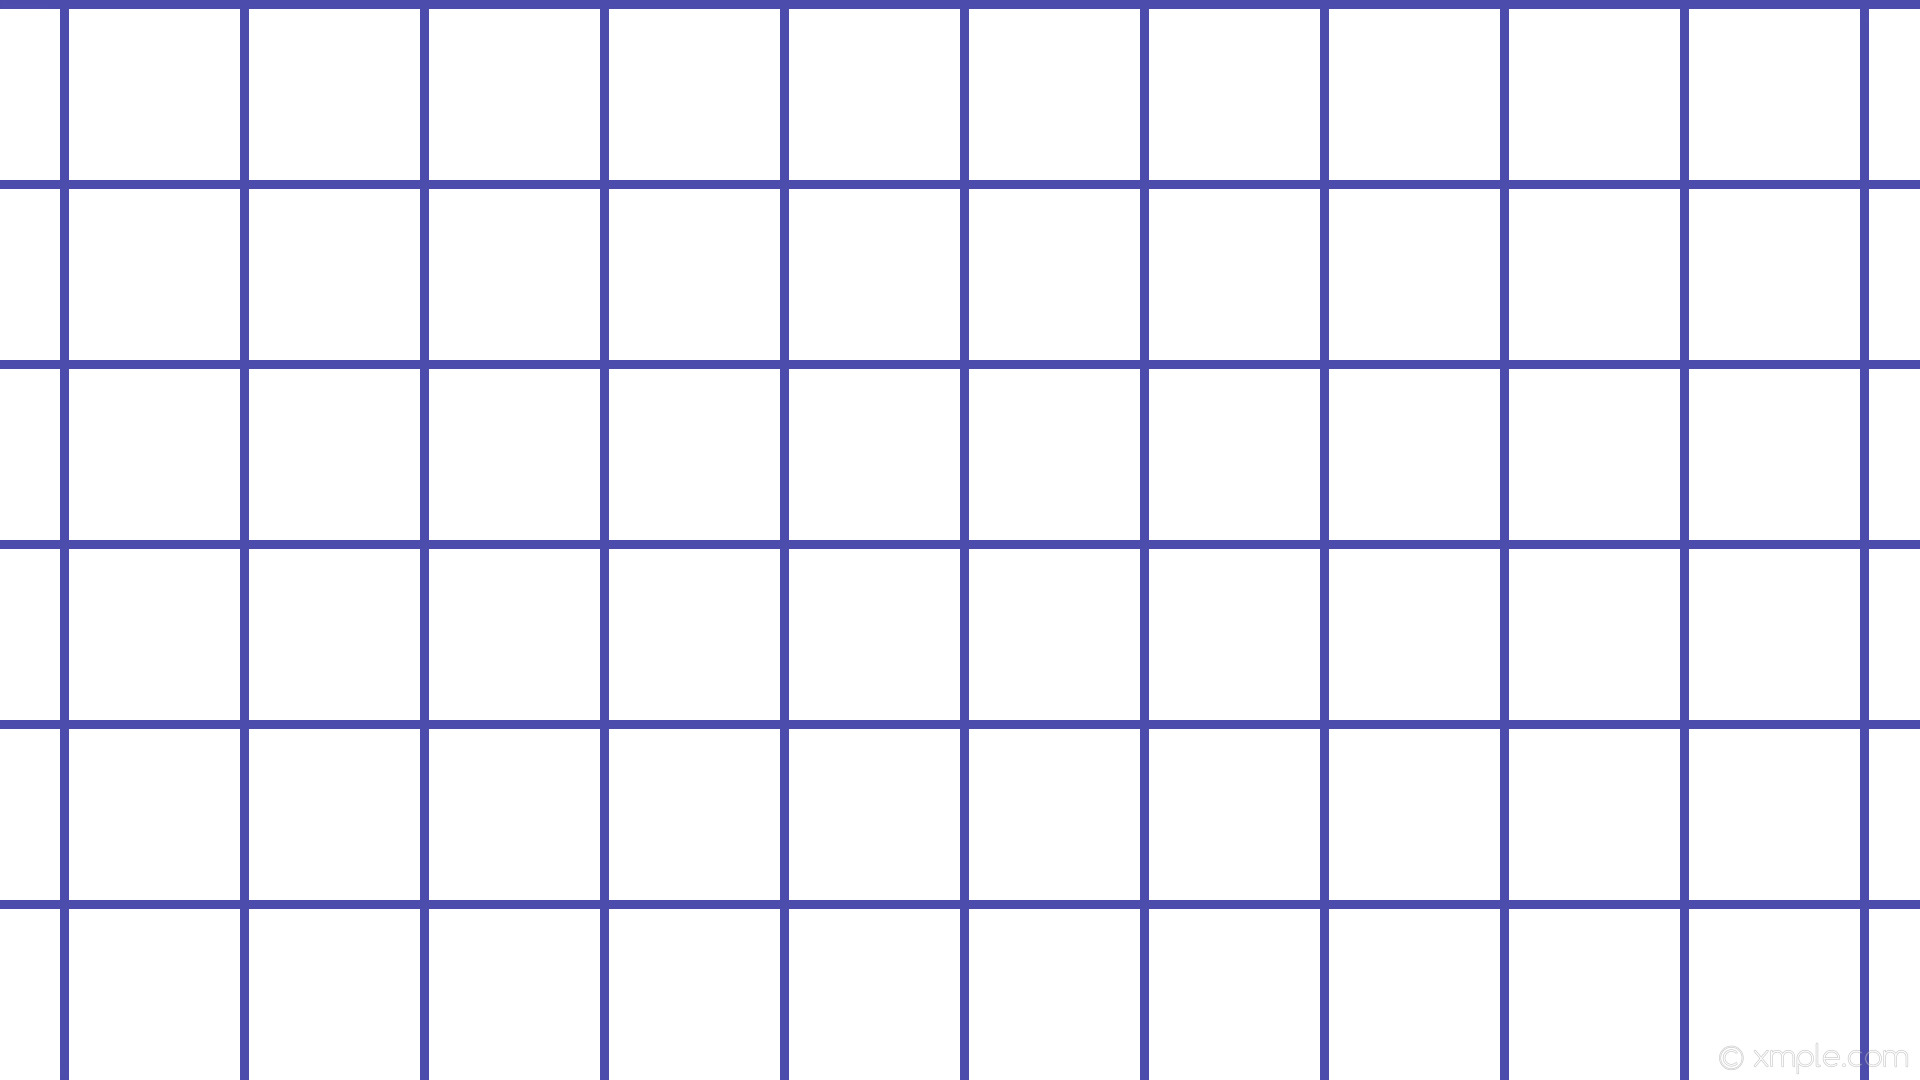 1920x1080 wallpaper graph paper blue white grid dark blue #ffffff #00008b 0° 9px 180px